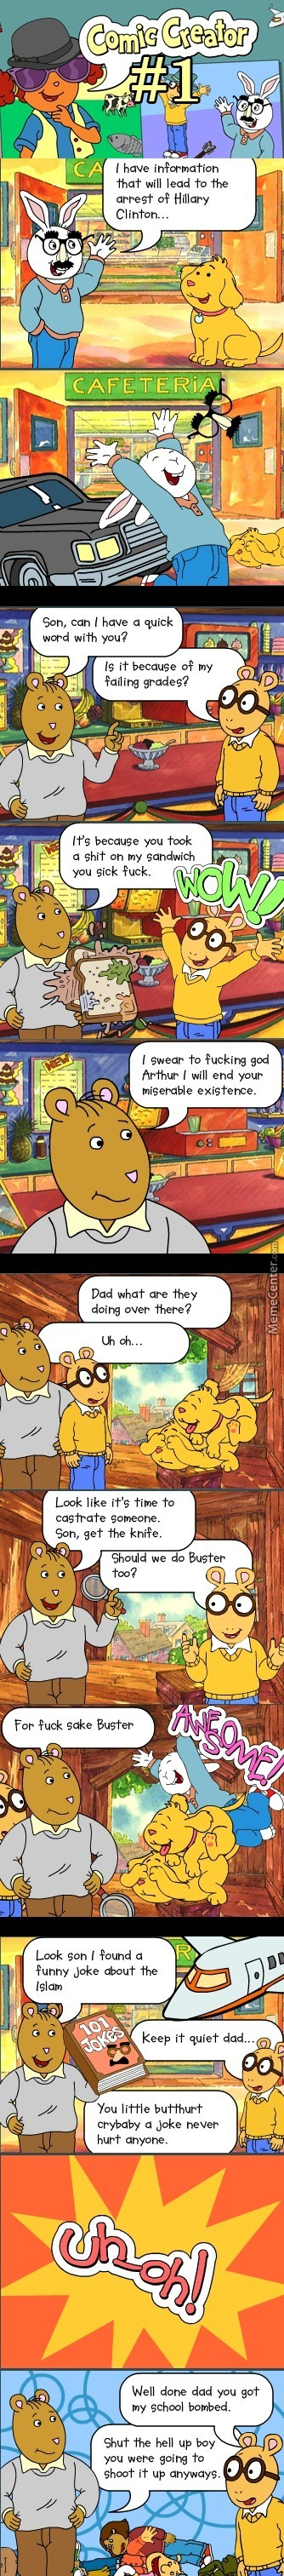 Arthur Comic Creator, Making Memes From Children Games Is Obviously A Sane And Adult Thing To Do